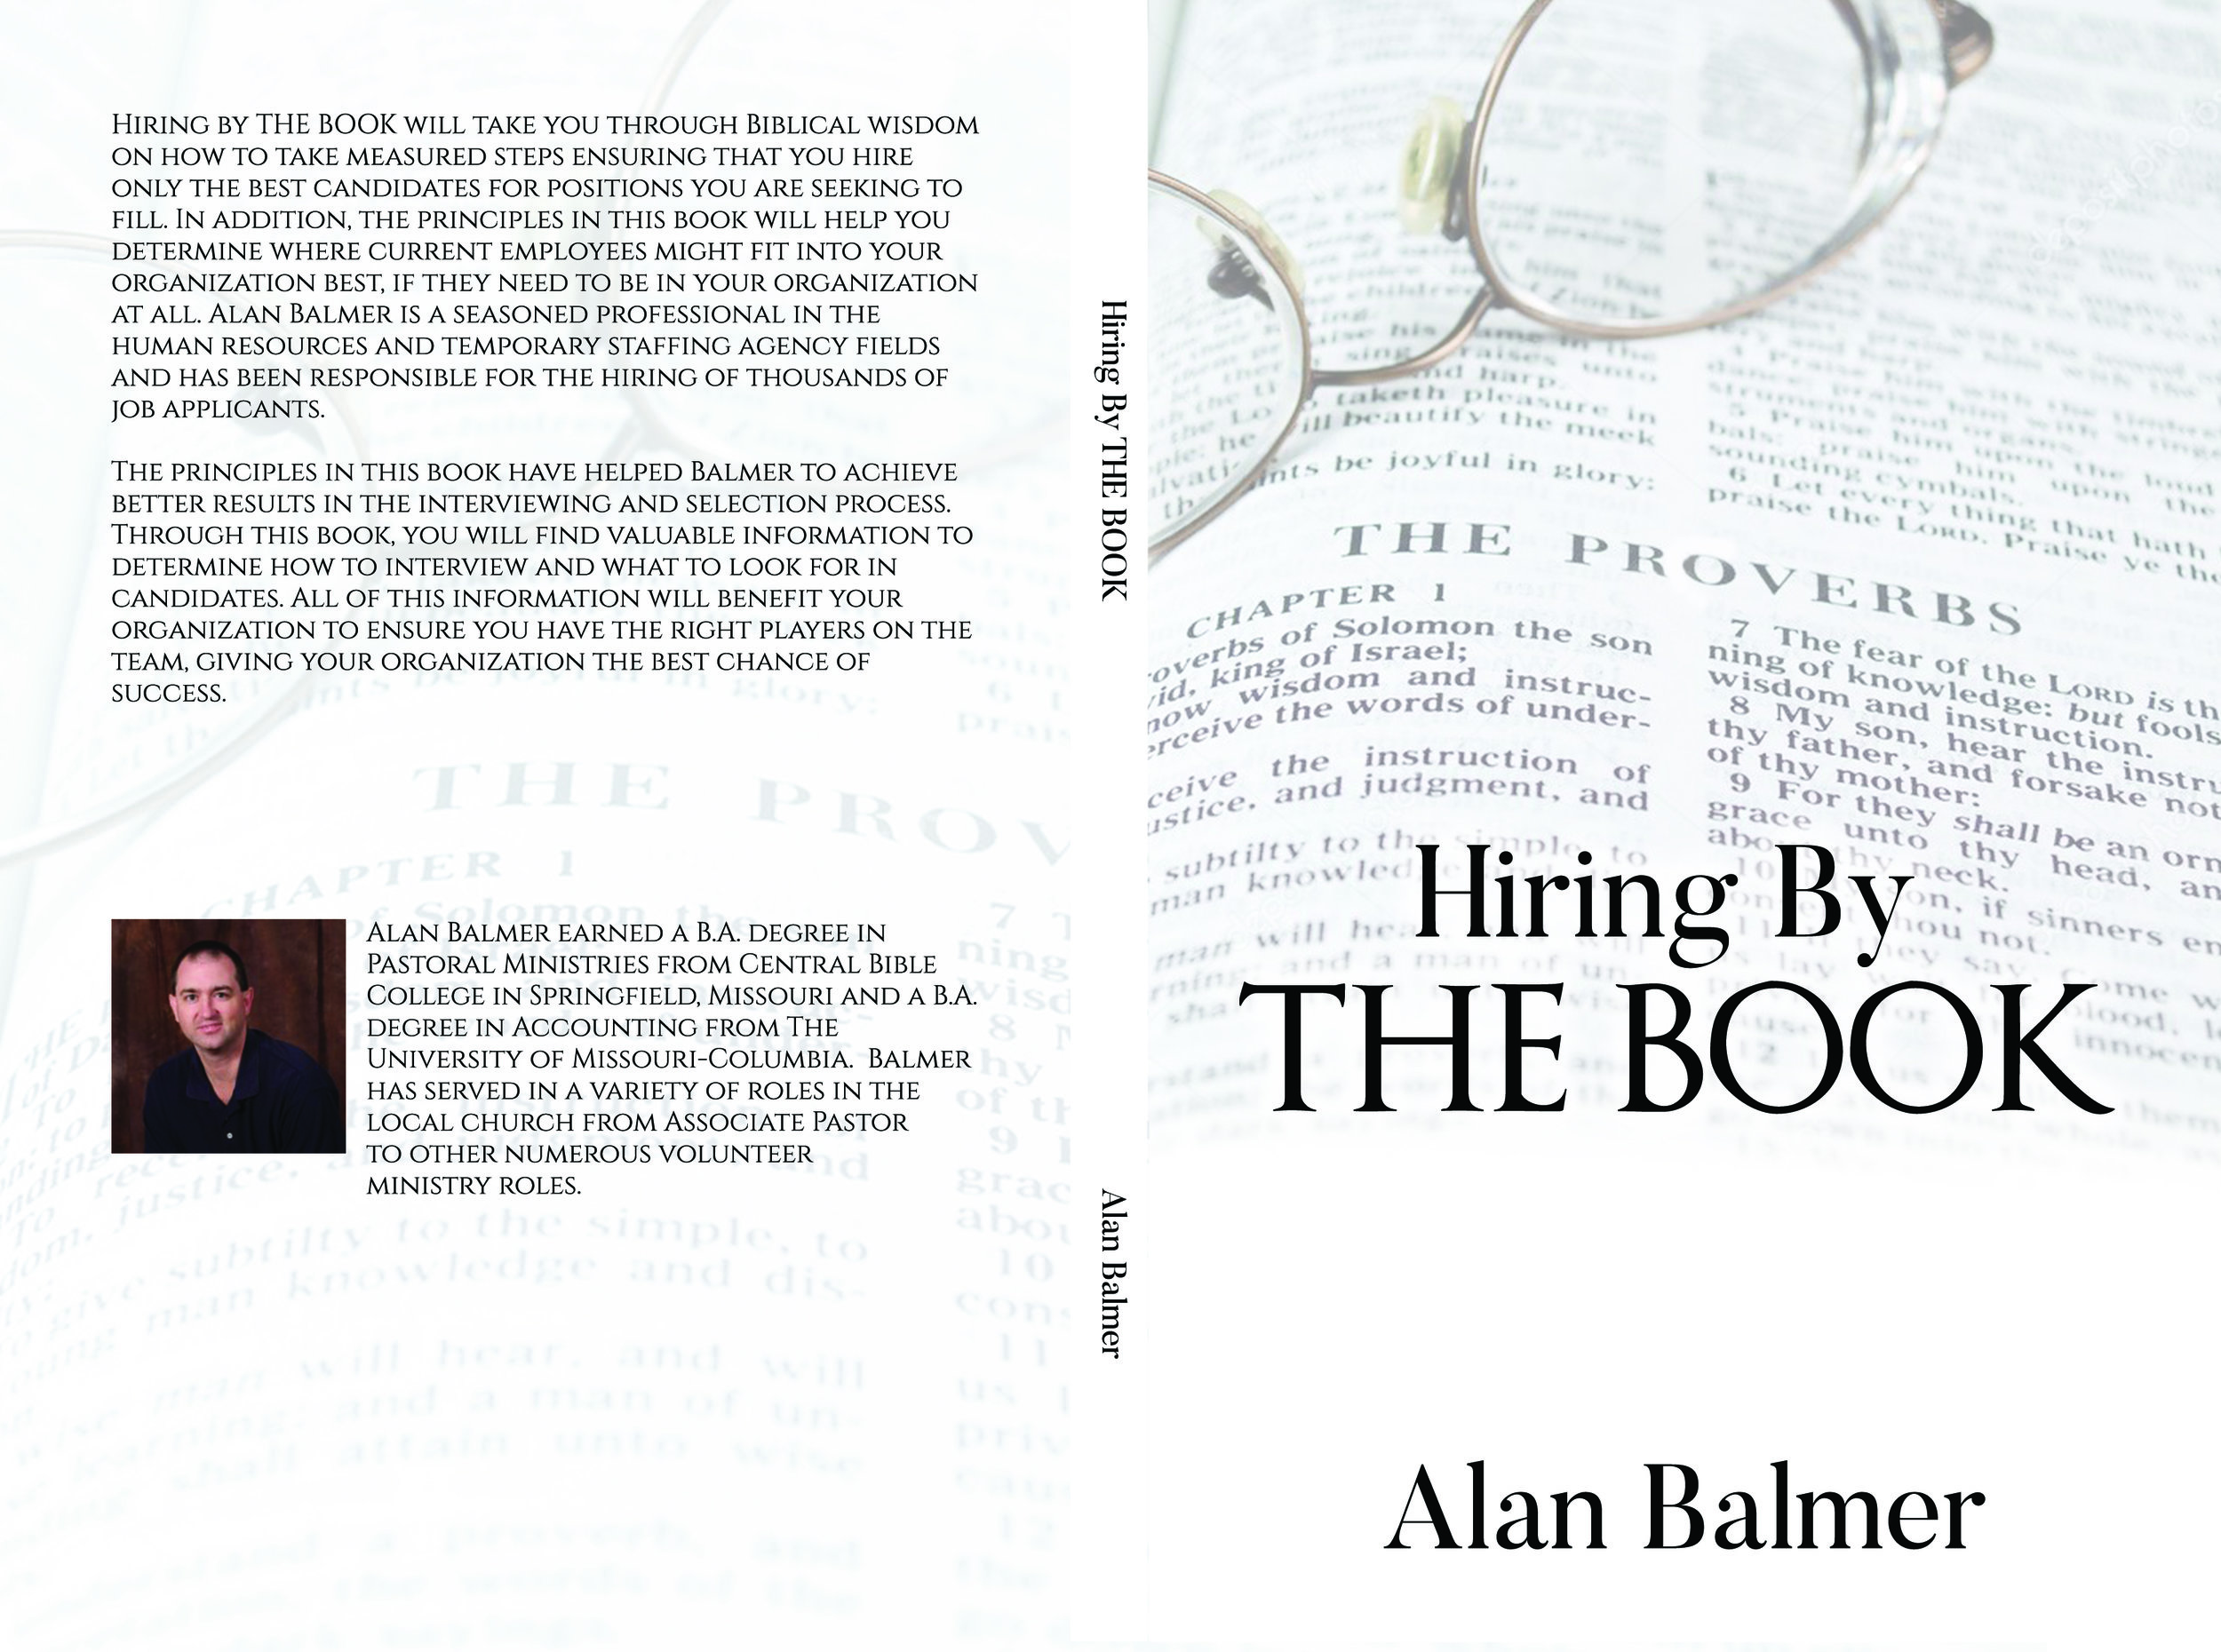 Hiring by THE BOOK will take you through Biblical wisdom on how to take measured steps ensuring that you hire only the best candidates for positions you are seeking to fill. In addition, the principles in this book will help you determine where current employees might fit into your organization best, if they need to be in your organization at all. Alan Balmer is a seasoned professional in the human resources and temporary staffing agency fields and has been responsible for the hiring of thousands of job applicants. The principles in this book have helped Balmer to achieve better results in the interviewing and selection process. Through this book, you will find valuable information to determine how to interview and what to look for in candidates. All of this information will benefit your organization to ensure you have the right players on the team, giving your organization the best chance of success.  https://www.amazon.com/dp/B07M73T4VS